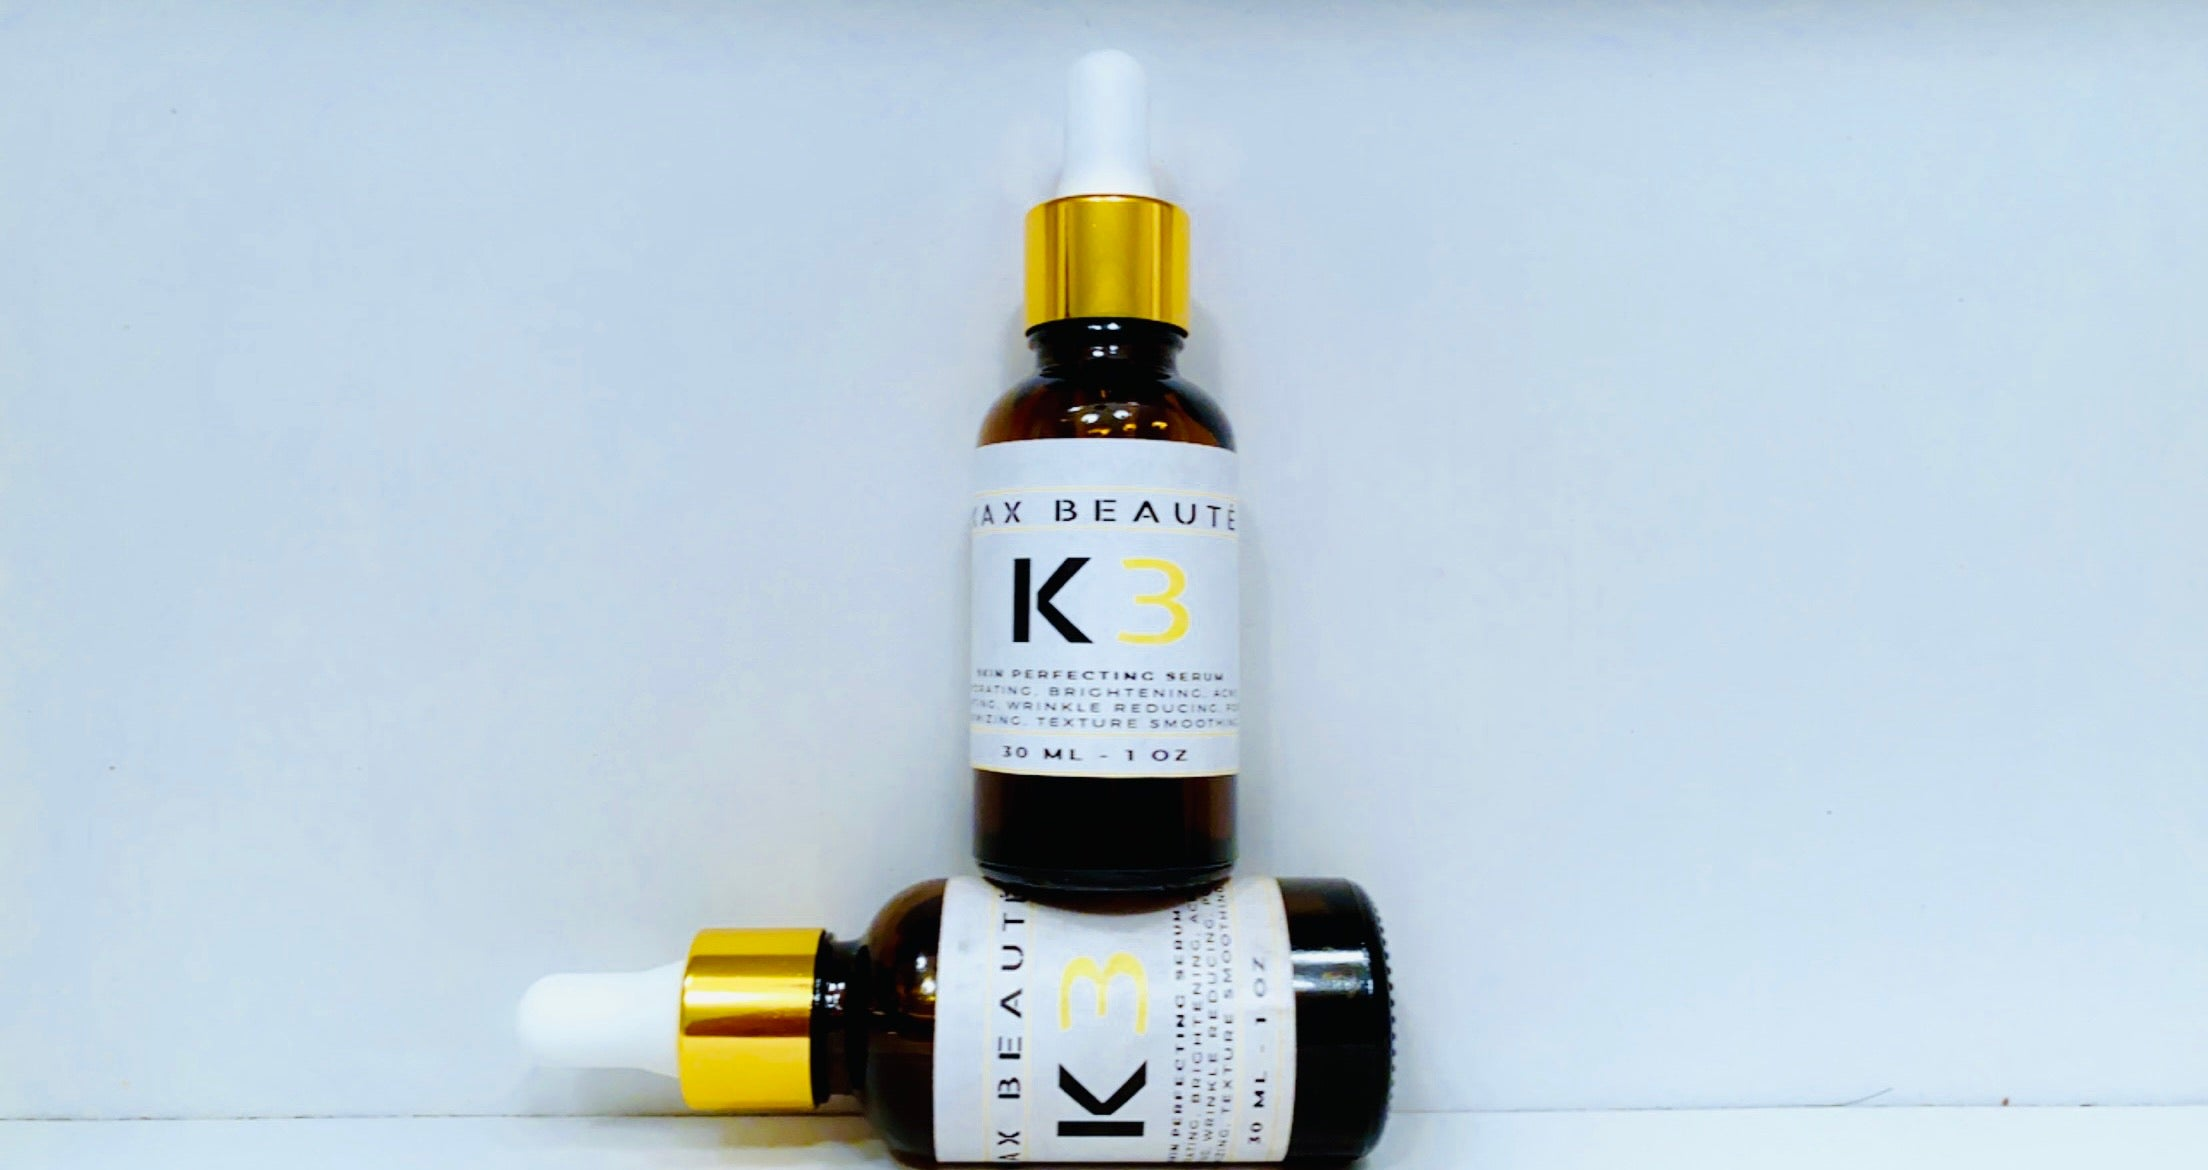 K3 Skin Perfecting Serum - Kax Beauté